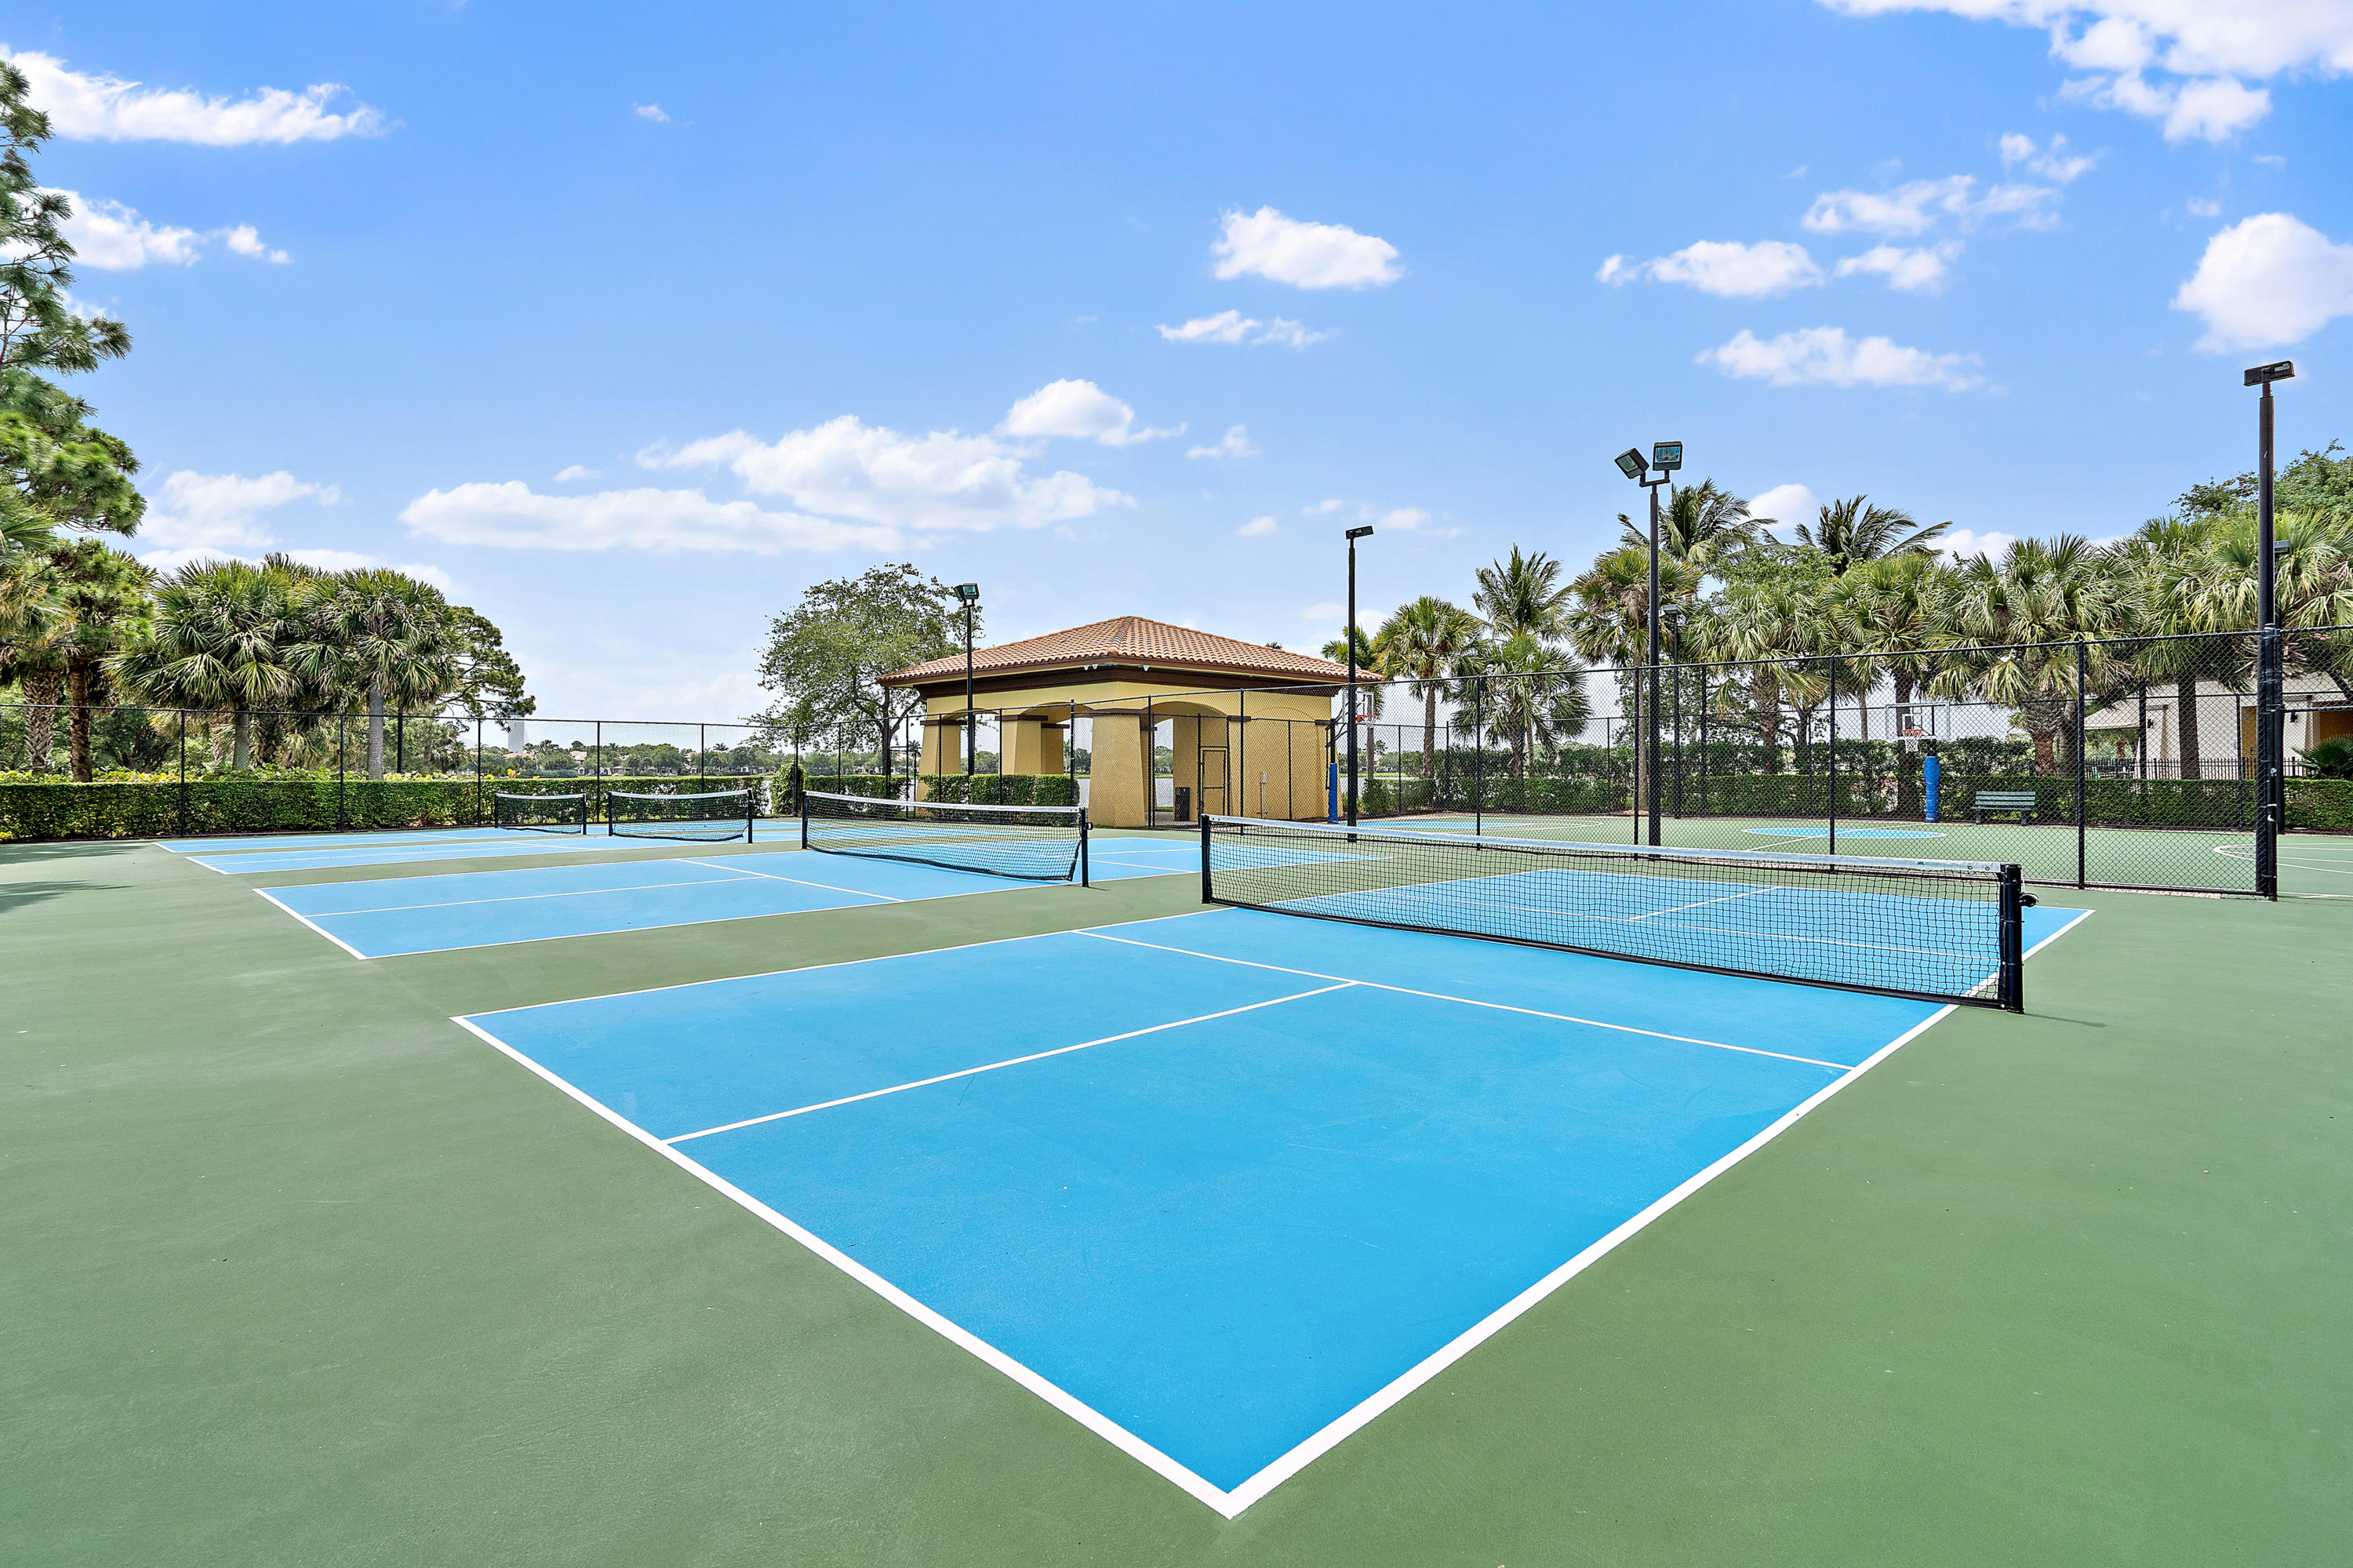 Community Clubhouse Pickleball Courts